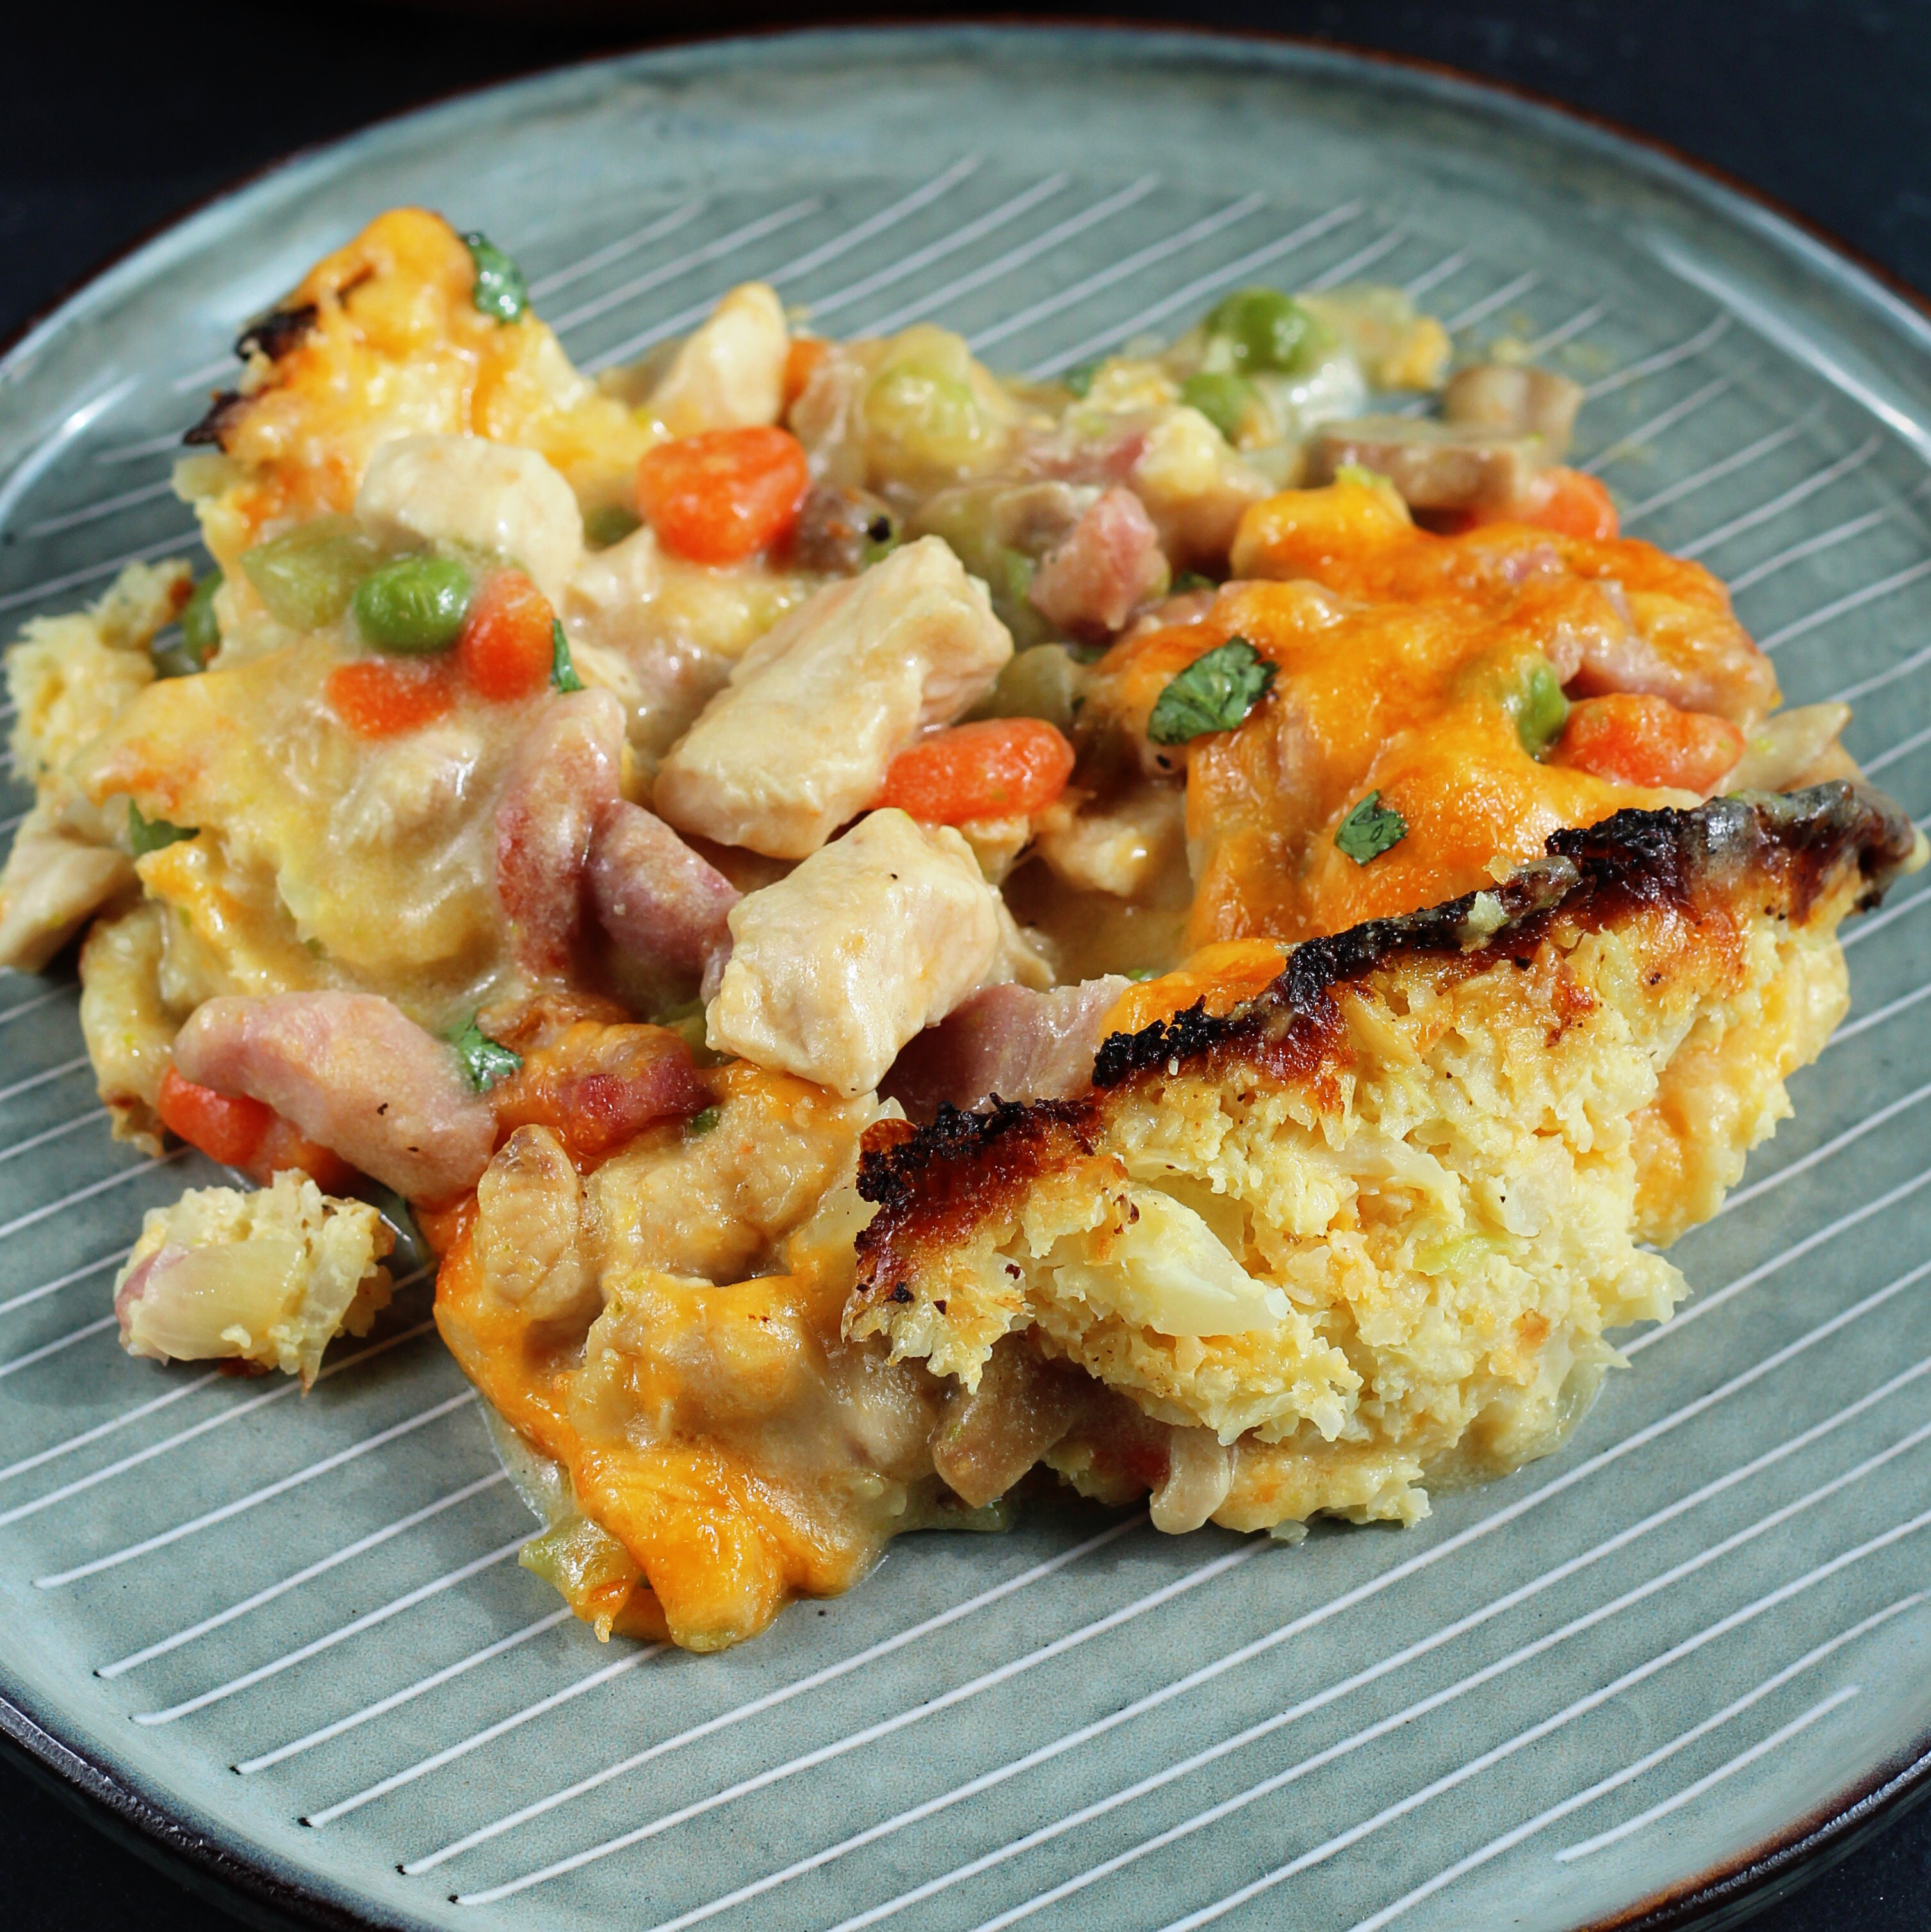 Keto Chicken Breast Pot Pie with Cauliflower Crust - Printer Friendly